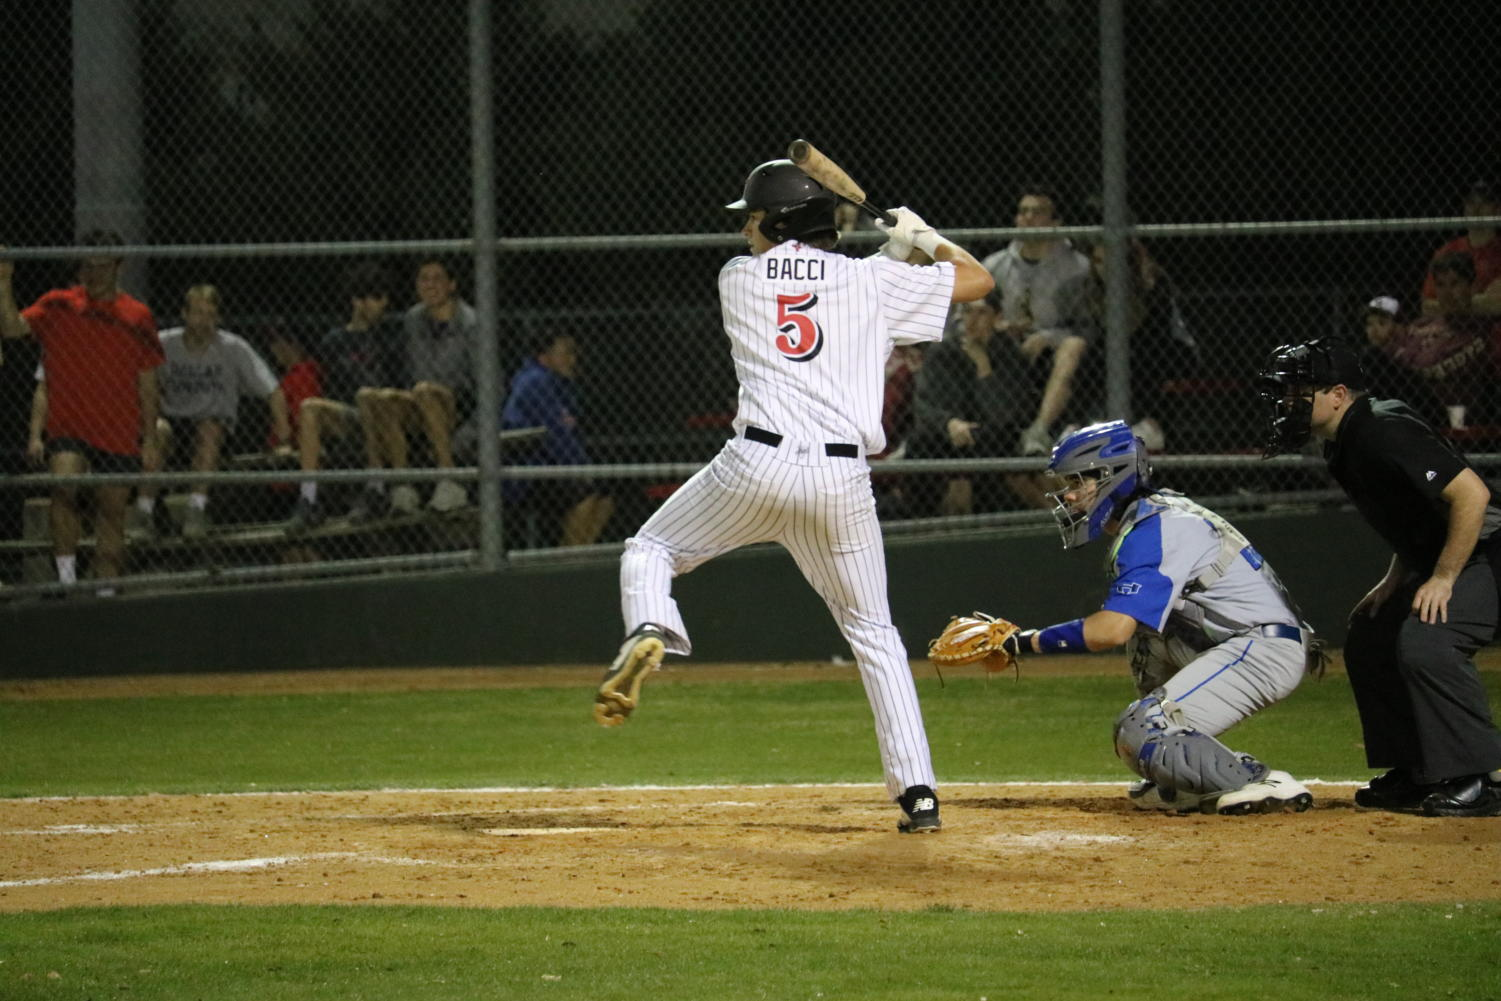 Coppell senior infielder Carter Bacci bats during the fifth inning against Hebron on Friday at the Coppell ISD Baseball/Softball Complex. The Cowboys play the Lewisville Farmers tonight at 7 p.m.